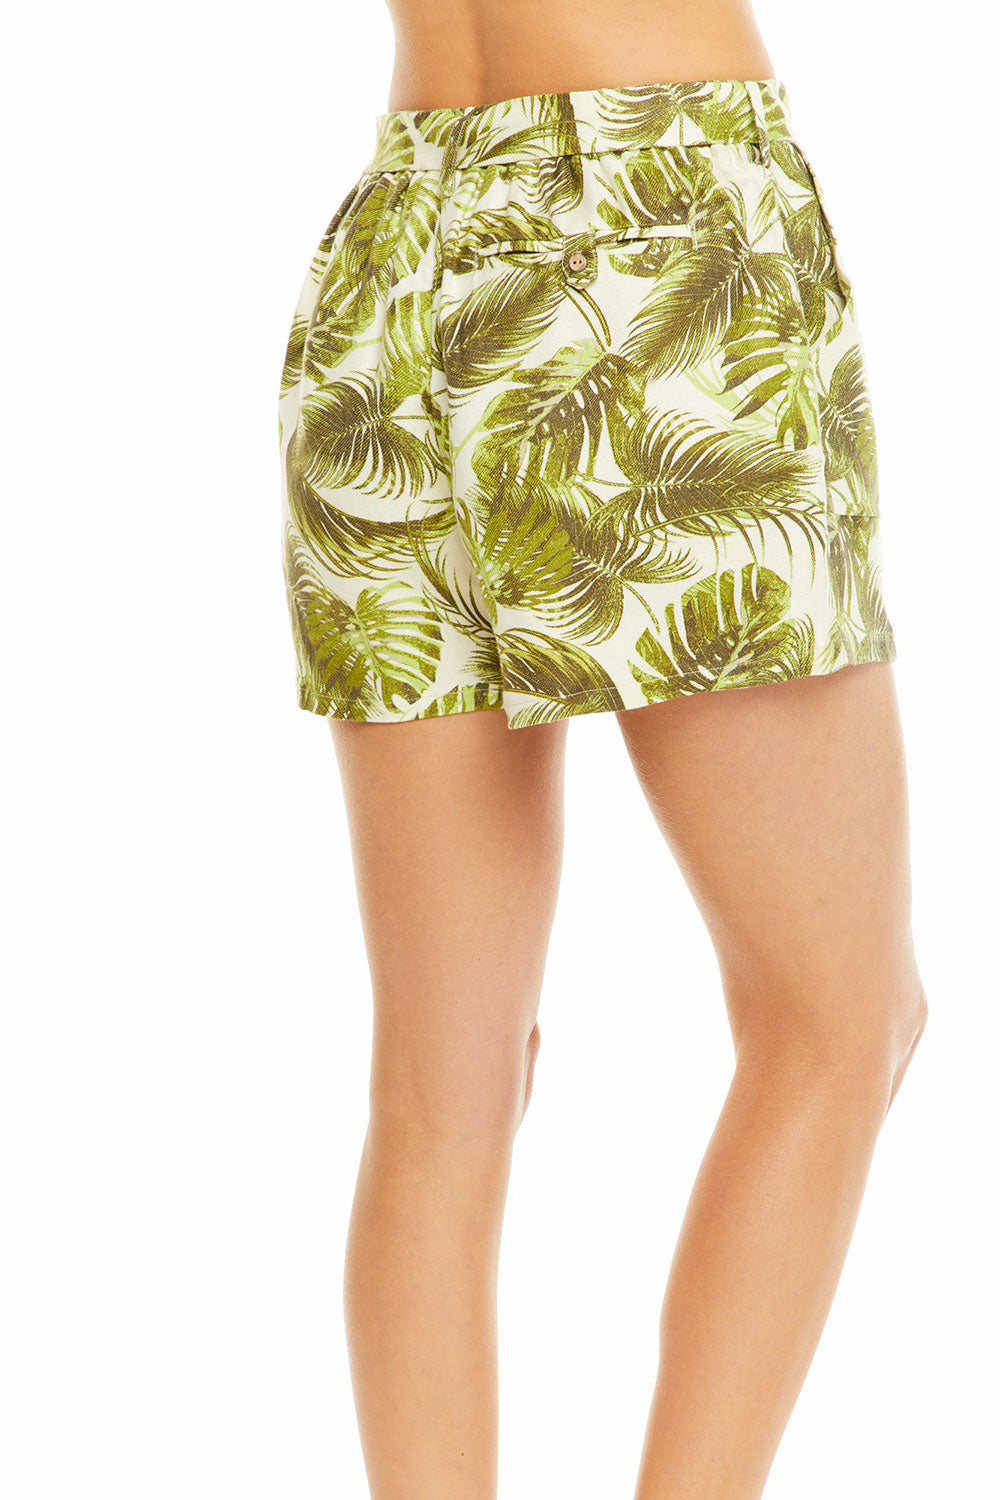 2da932c723 Beachy Linen Paperbag Waist Tie Shorts, WOMENS, chaserbrand.com,chaser  clothing,